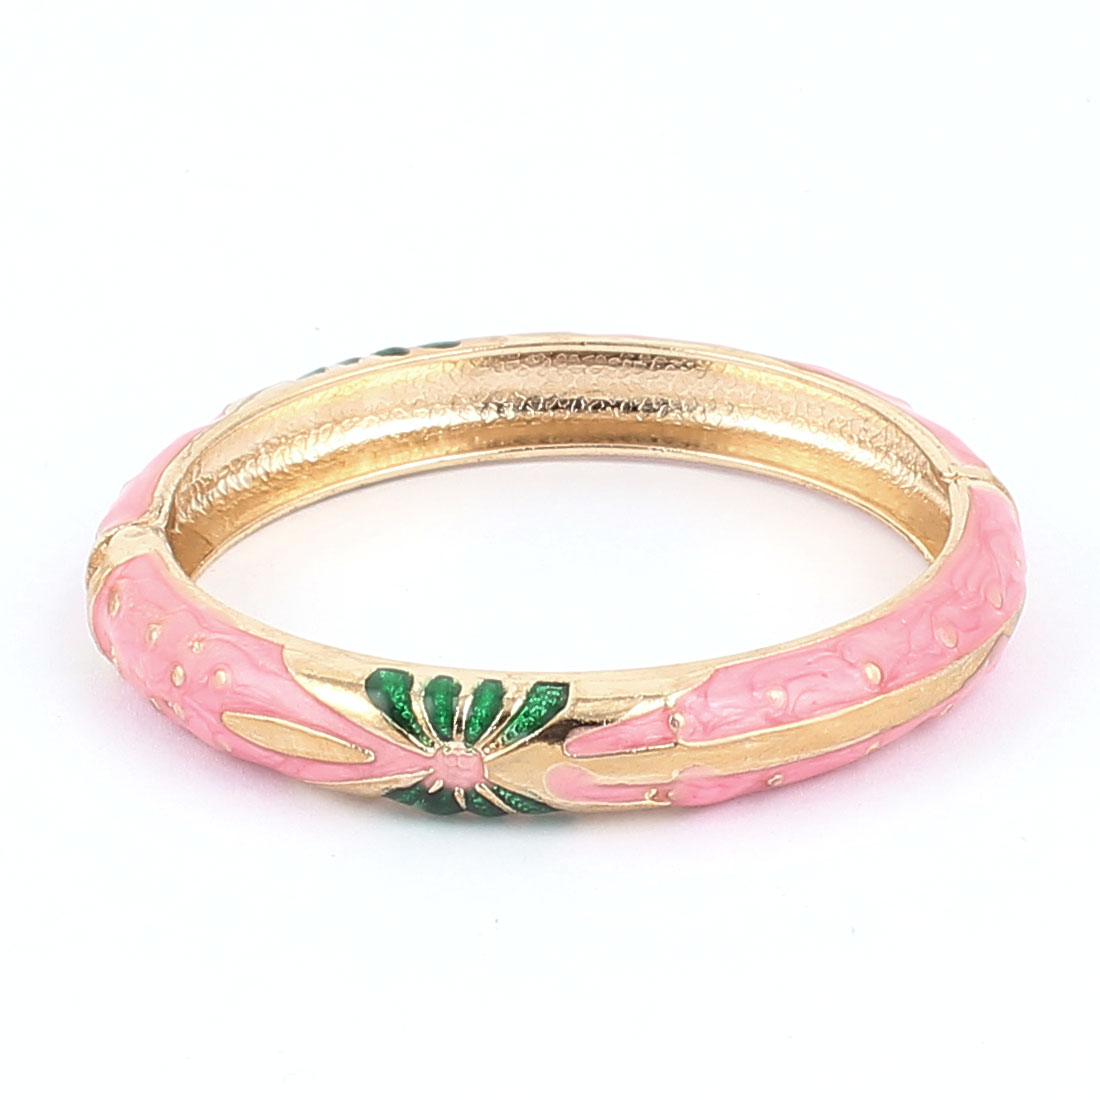 Woman Lady Spring Hinged Round Cuff Butterfly Pattern Enamel Bracelet Bangle Pink